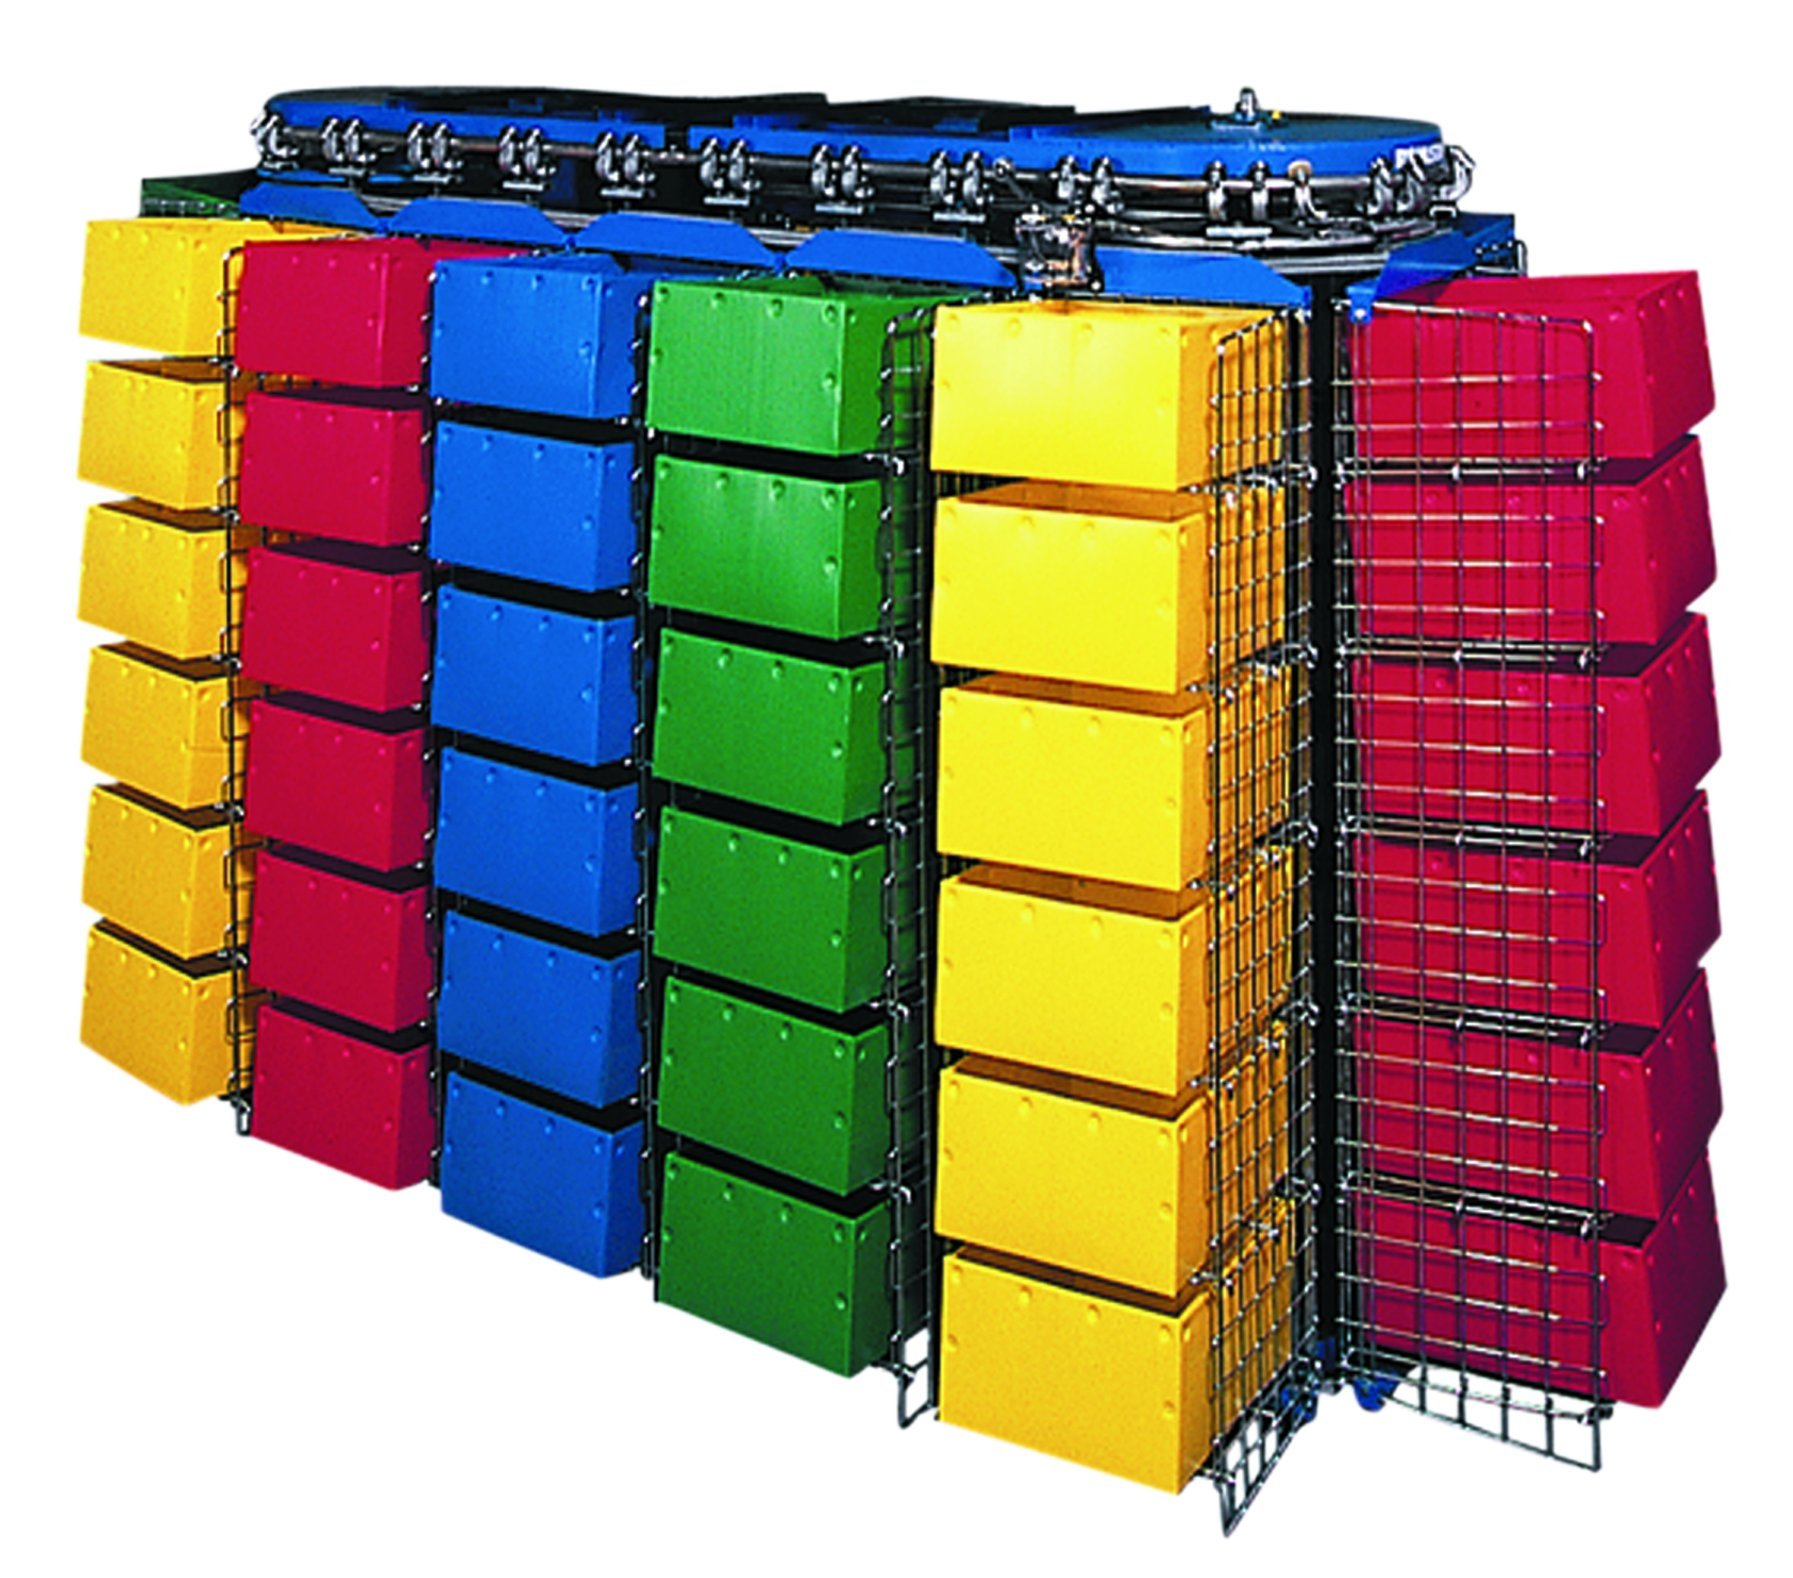 Flexcon Container's Corrugated Plastic Containers Offer